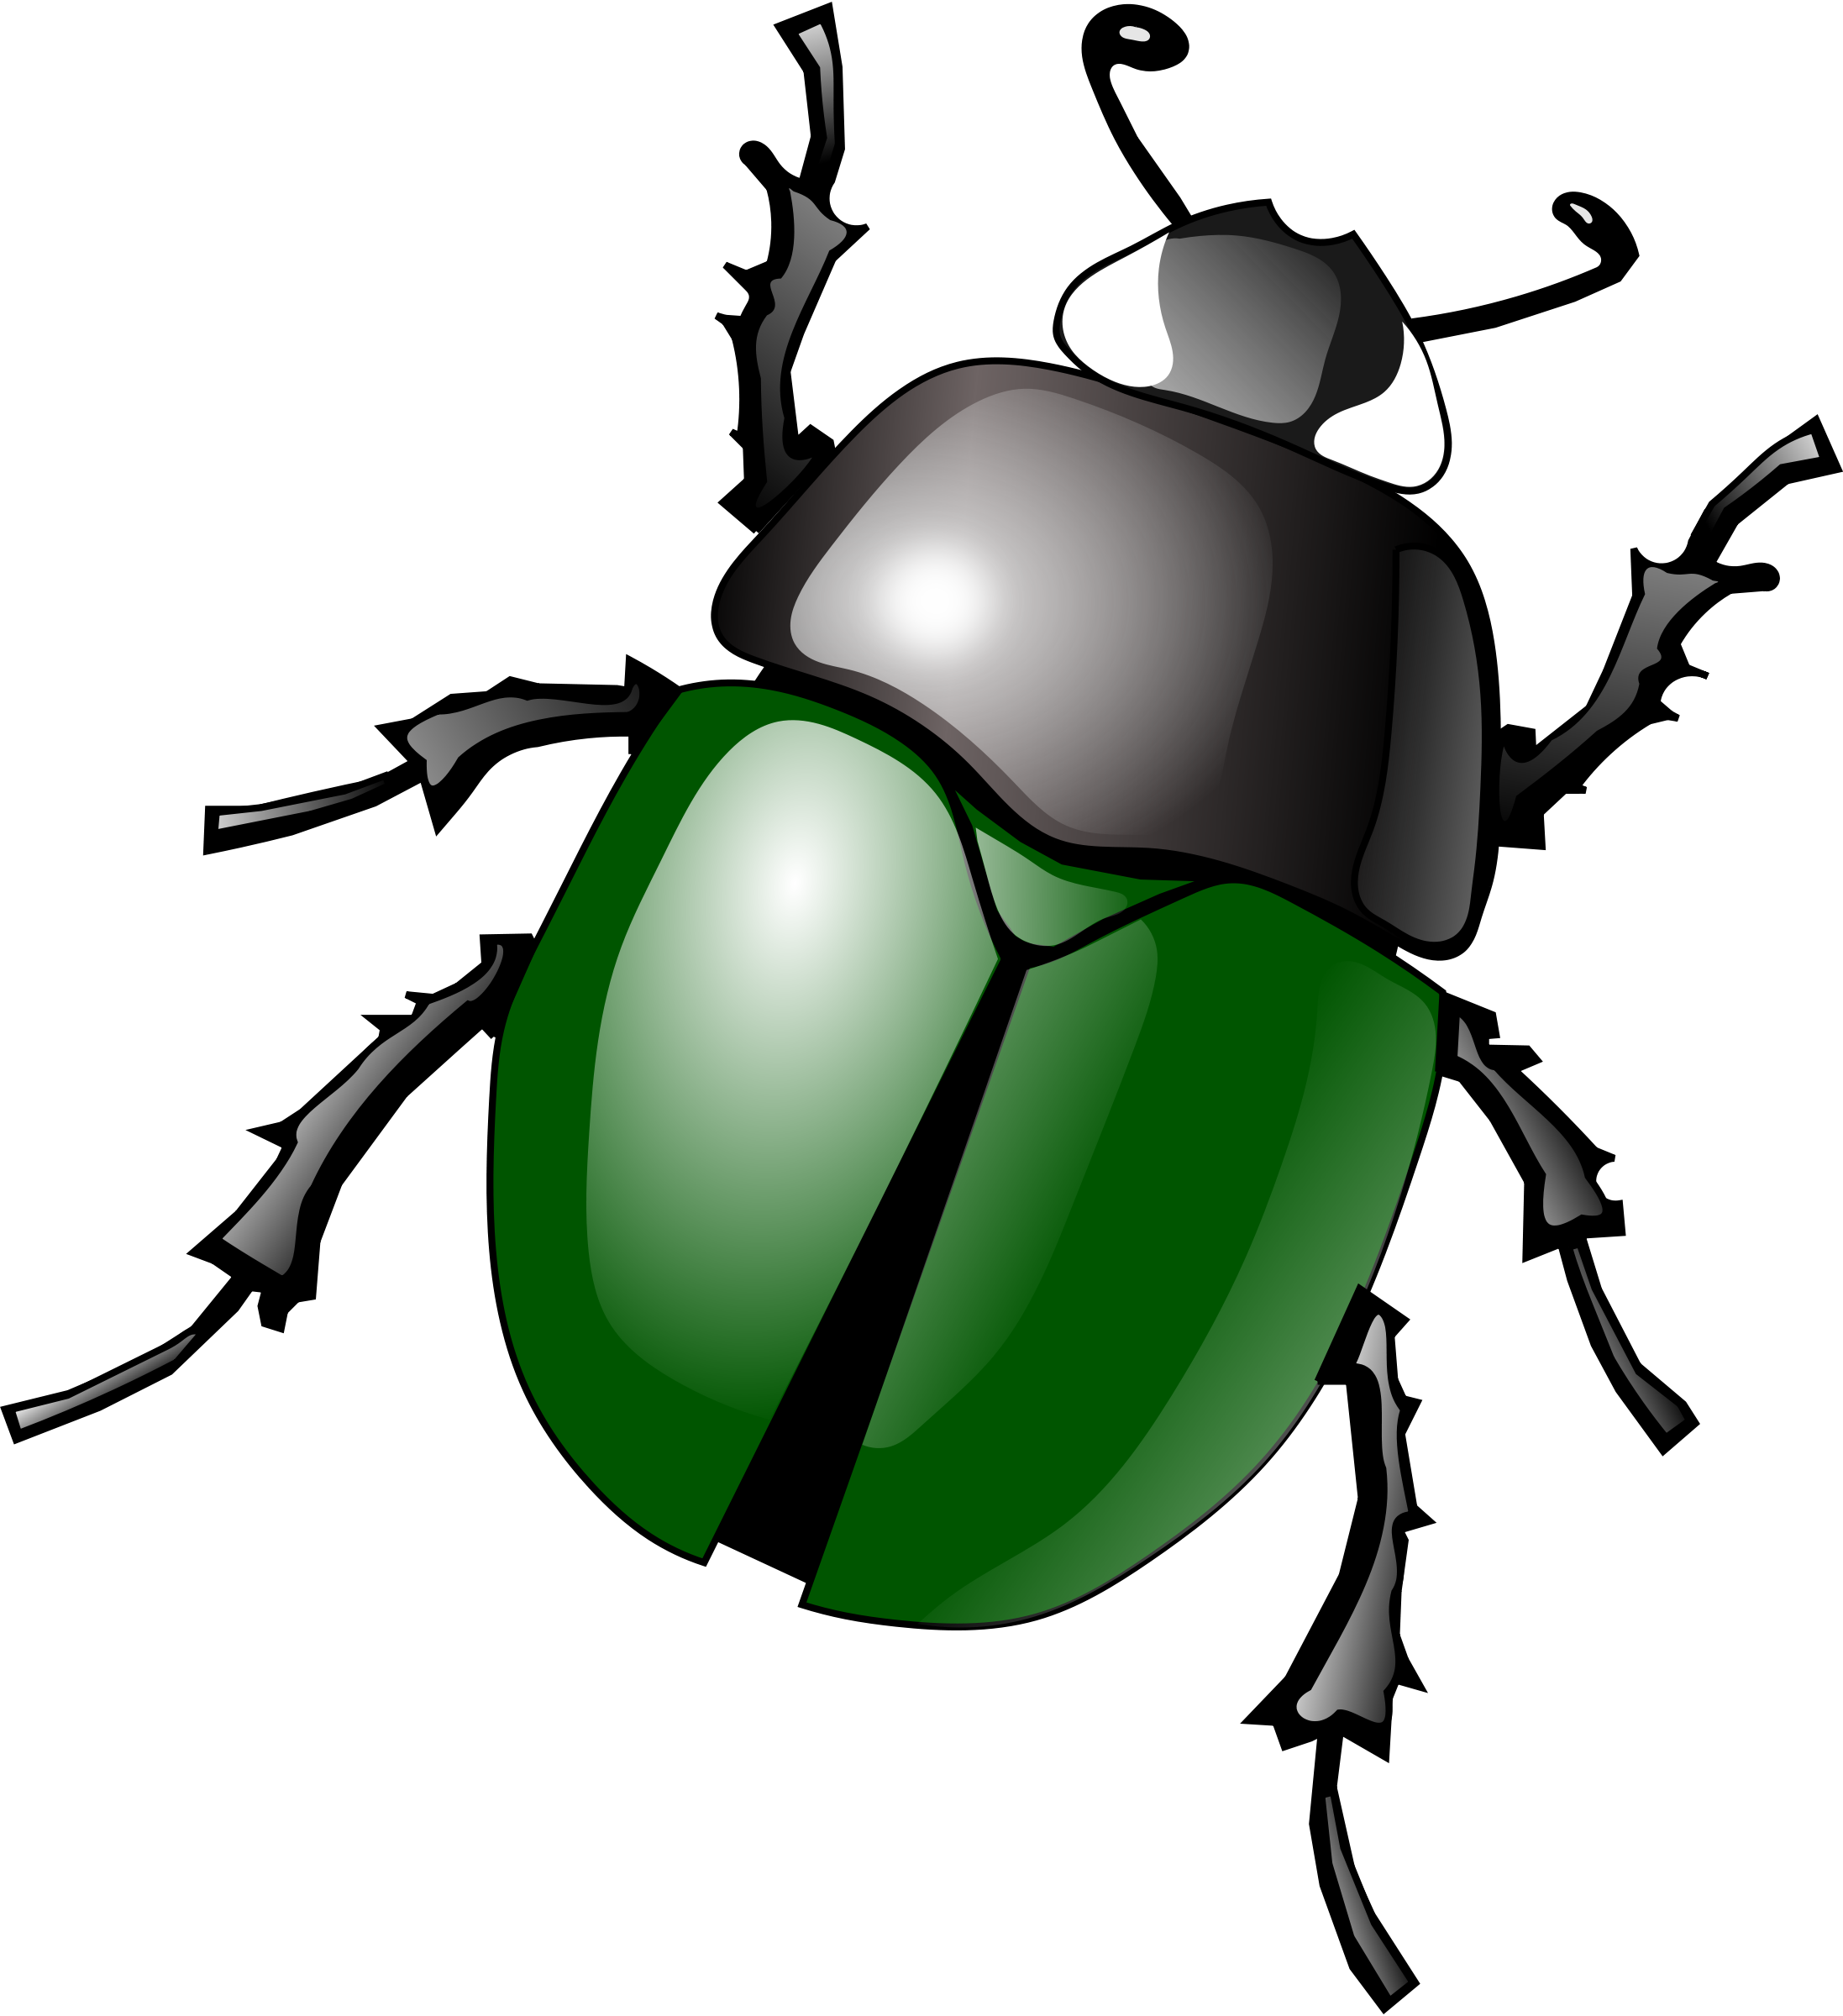 clip black and white Bug clipart realistic. Bugs png images free